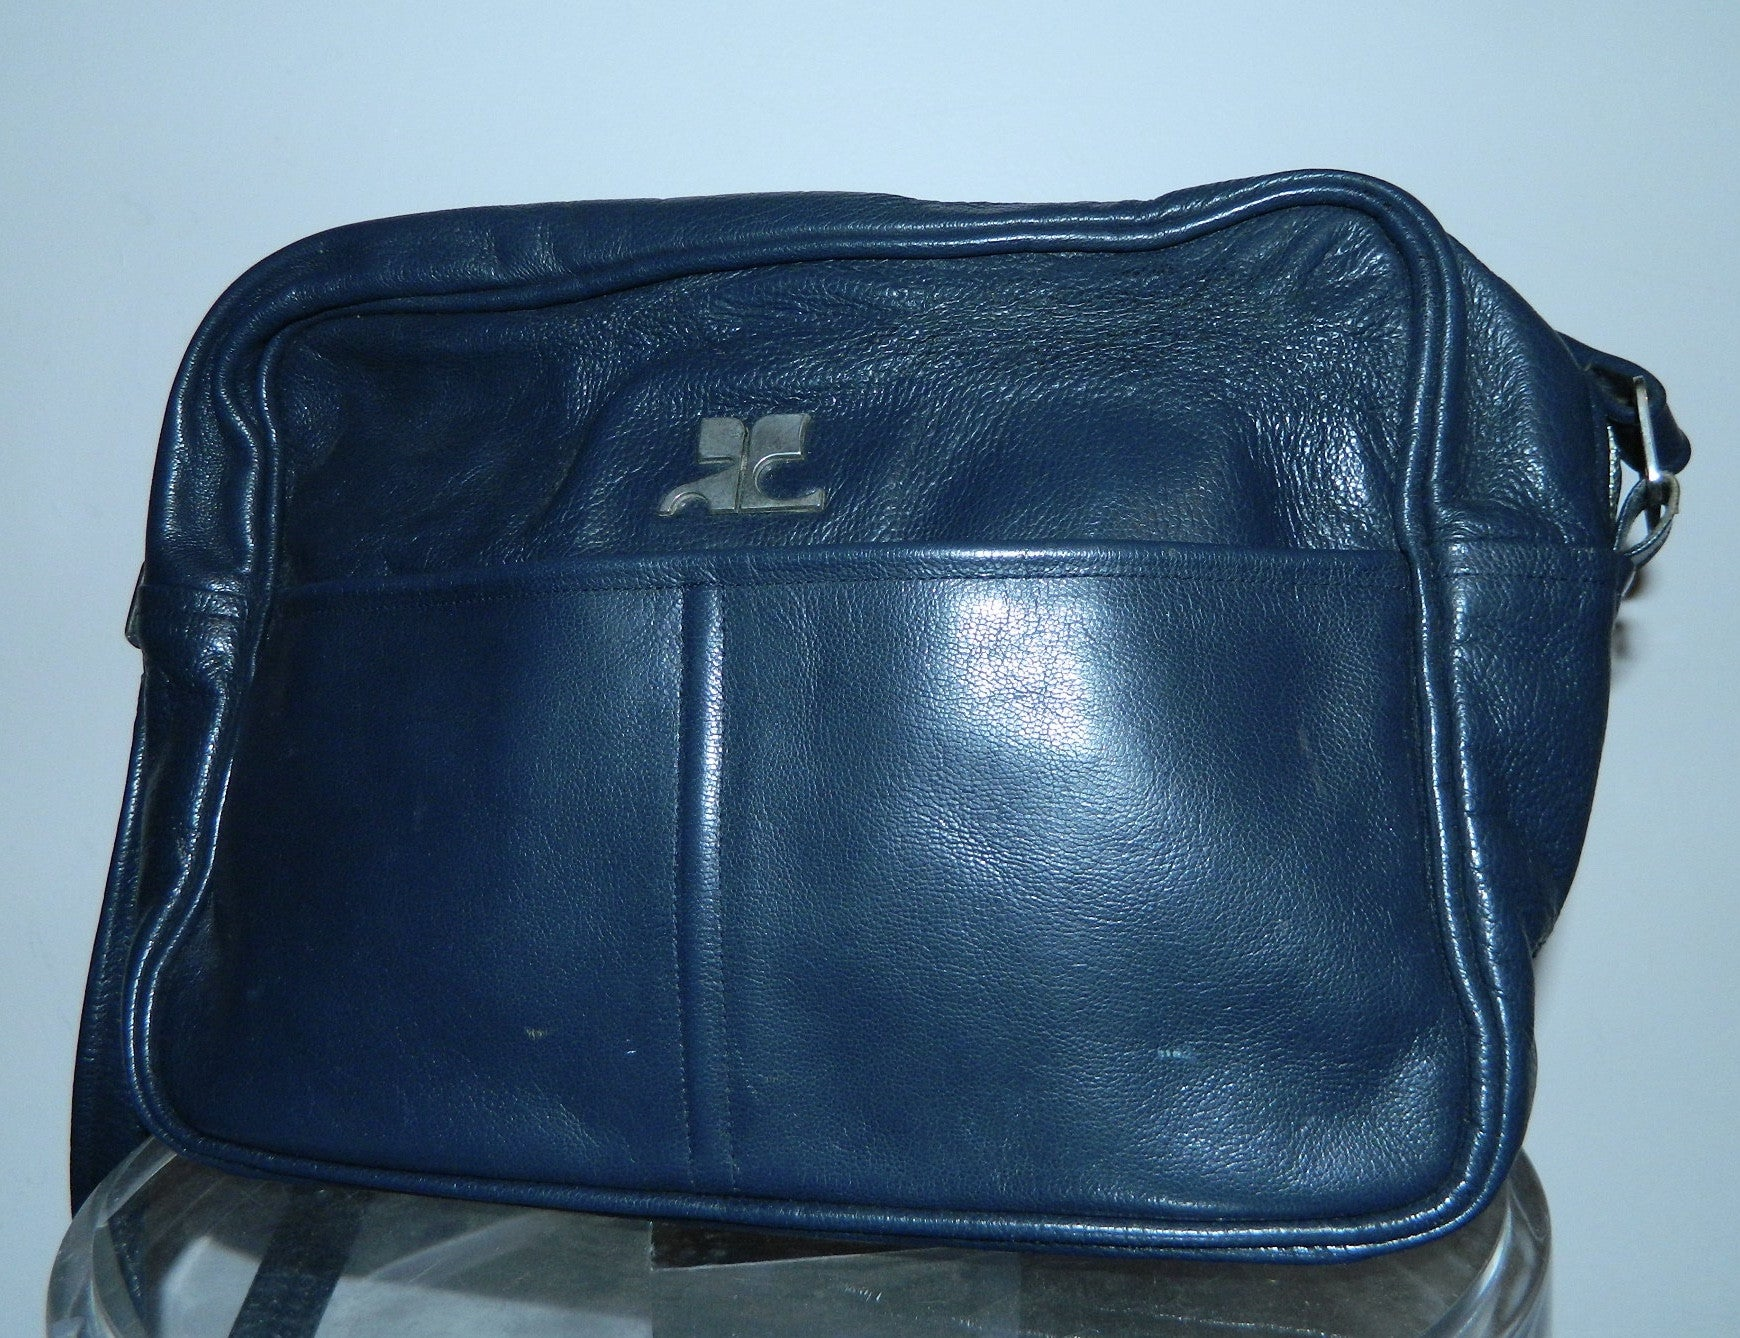 Courrèges leather camera bag / vintage 1960s dark blue COURREGES cross- body purse